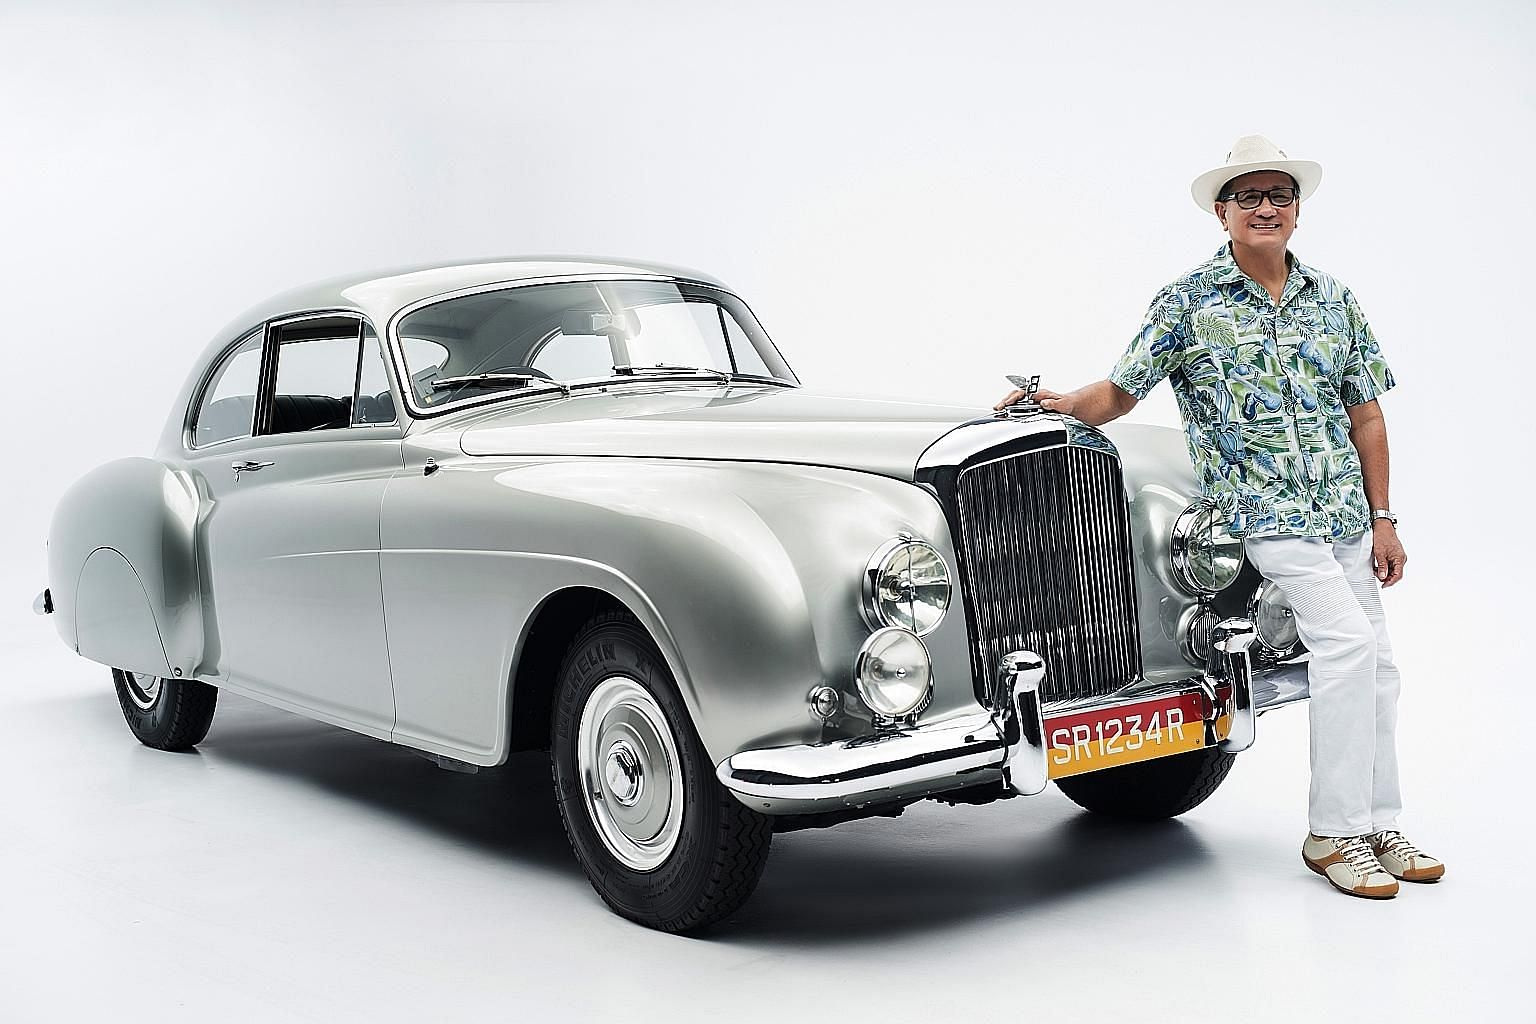 Mr Larry Lim fell in love with the Bentley R-Type Continental in 1953 when he was 12 and browsing car magazines at bookshops in Bras Basah Road.